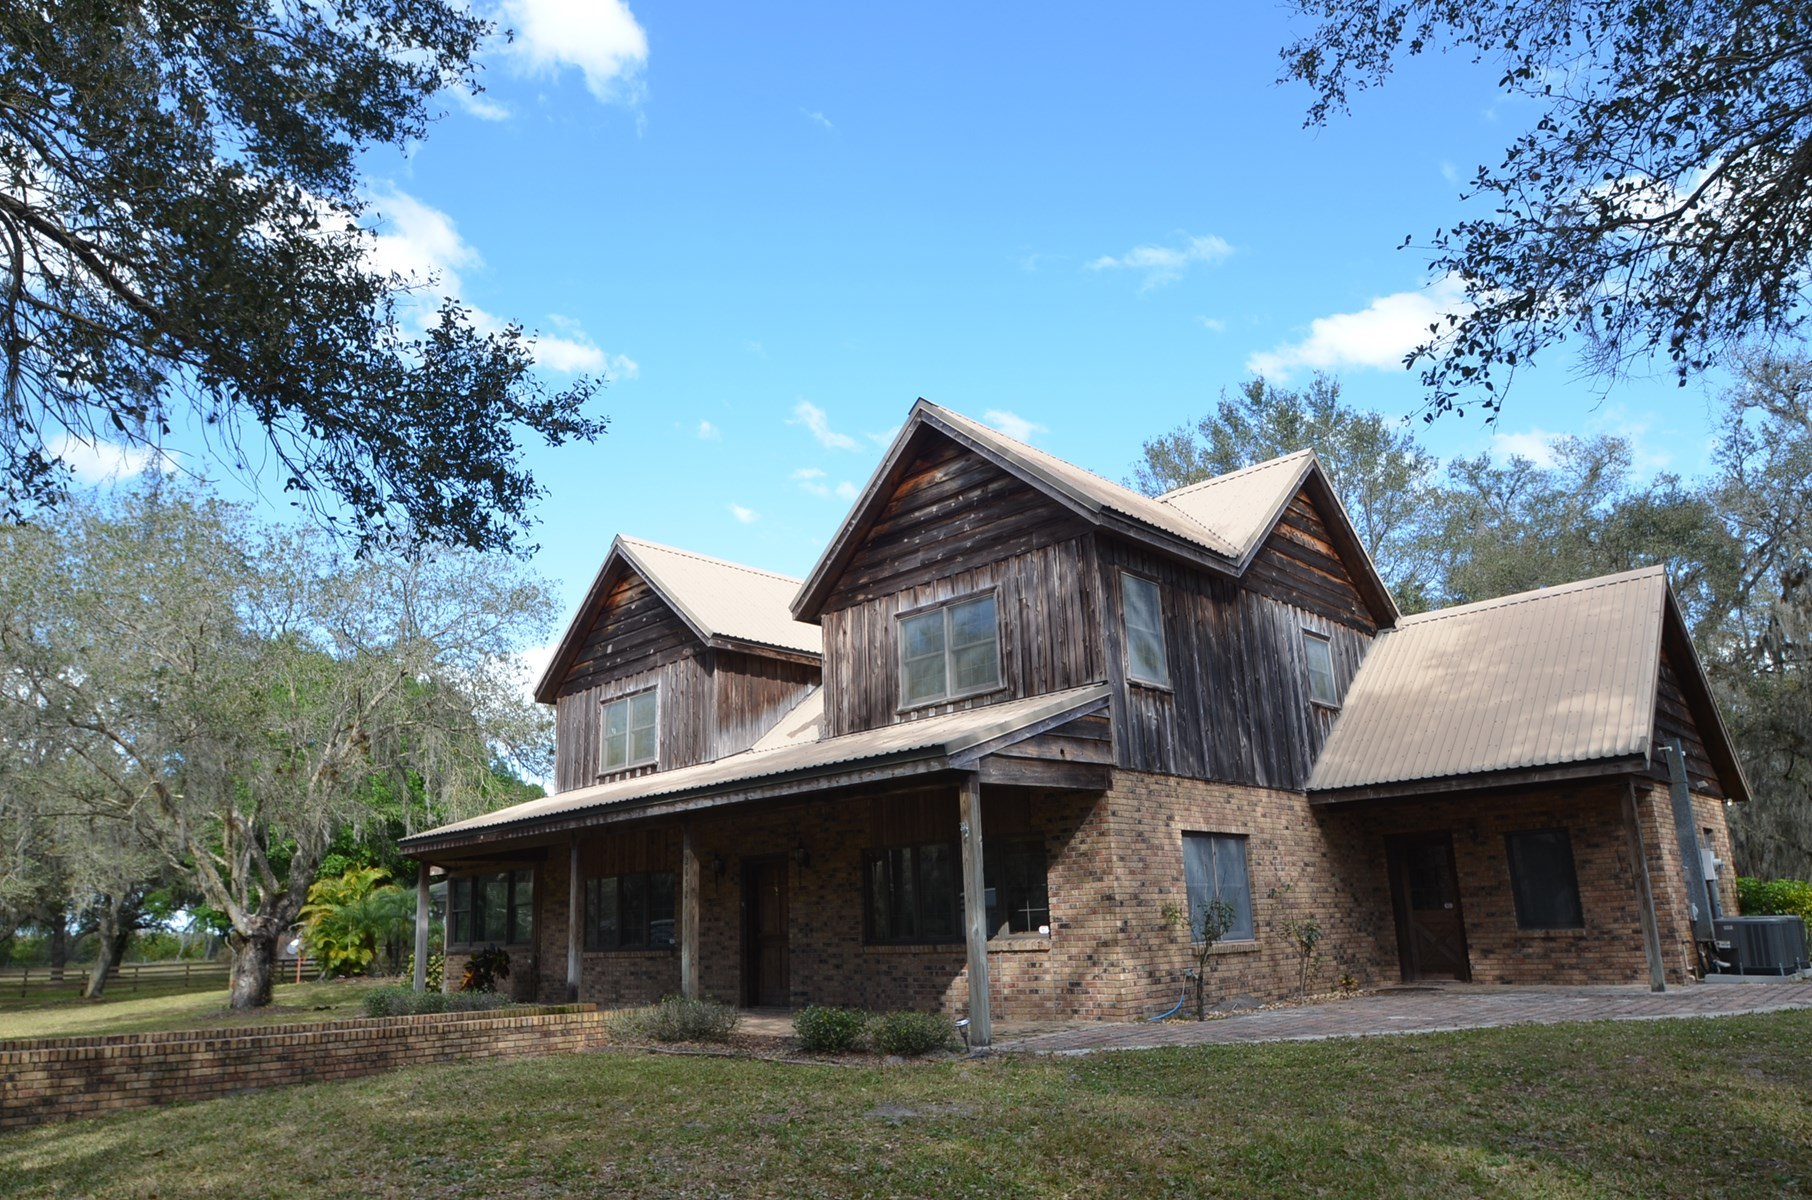 54+/- Acre Ranch for sale with pool home for sale in Arcadia